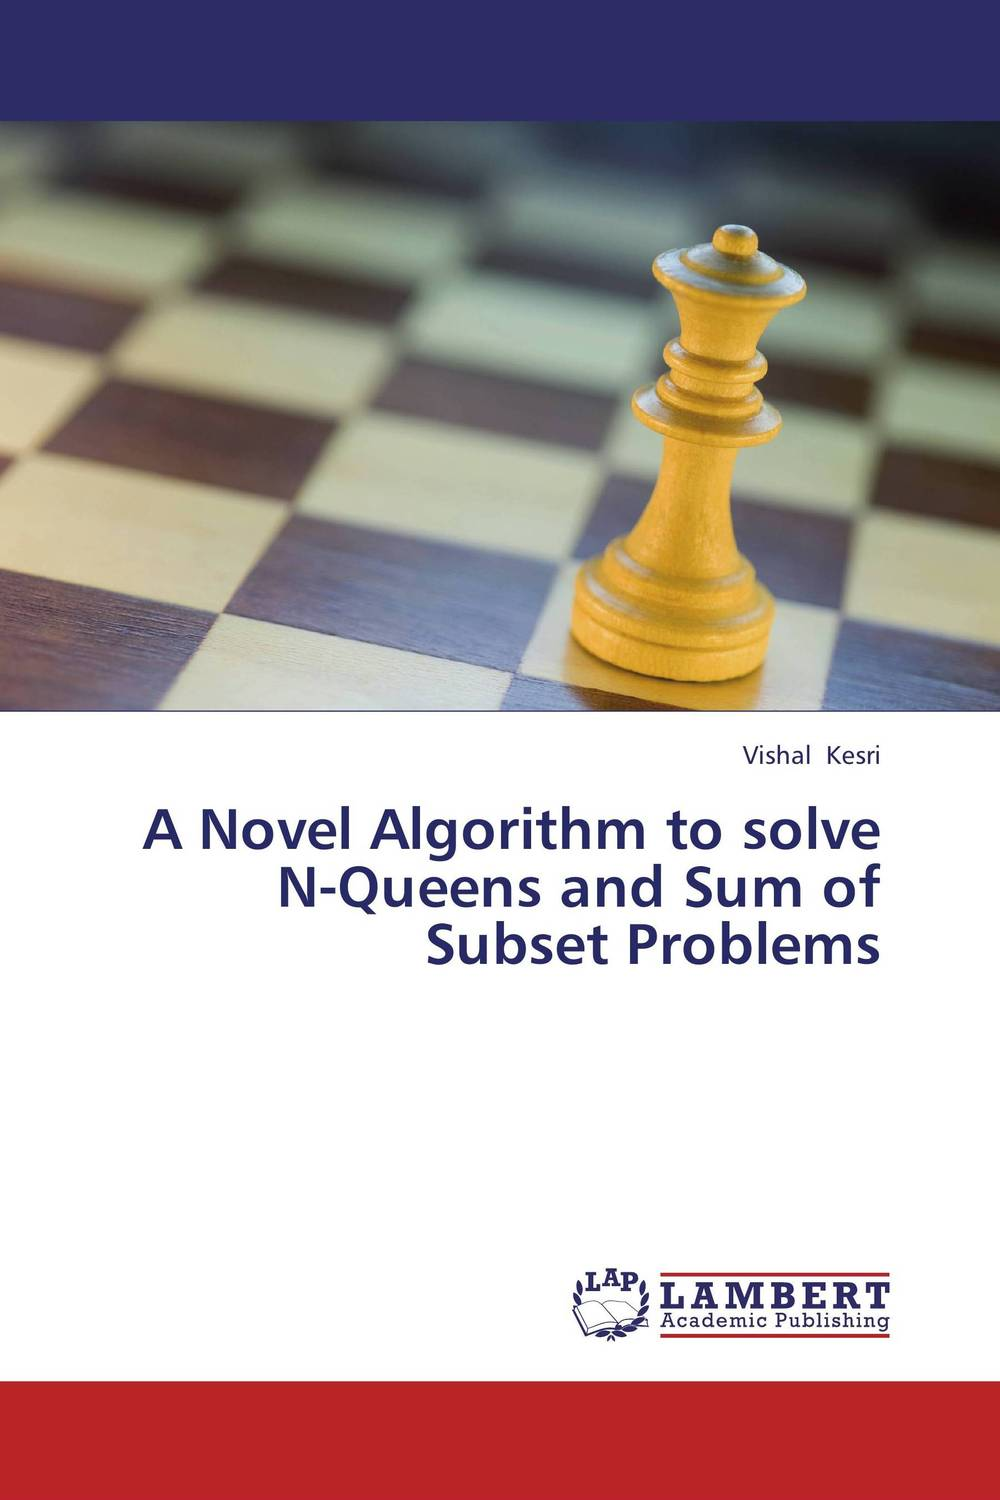 A Novel Algorithm to solve N-Queens and Sum of Subset Problems jamaica jamaica no problem